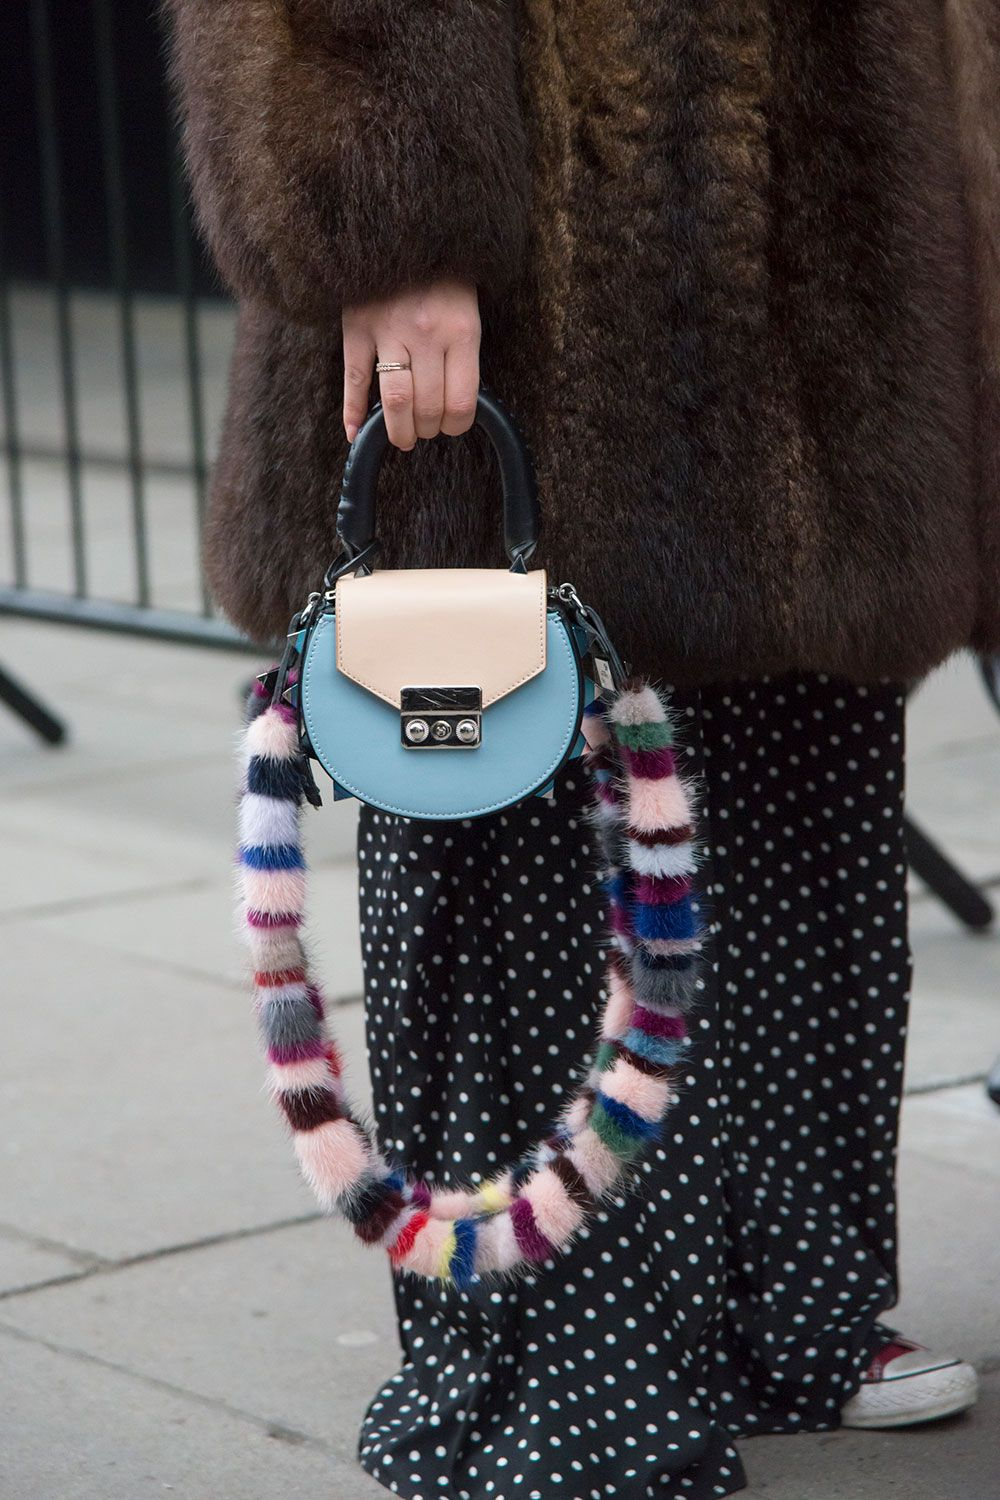 5 Top-Selling Handbag Trends You'll Want to Get Your Hands on,ASAP